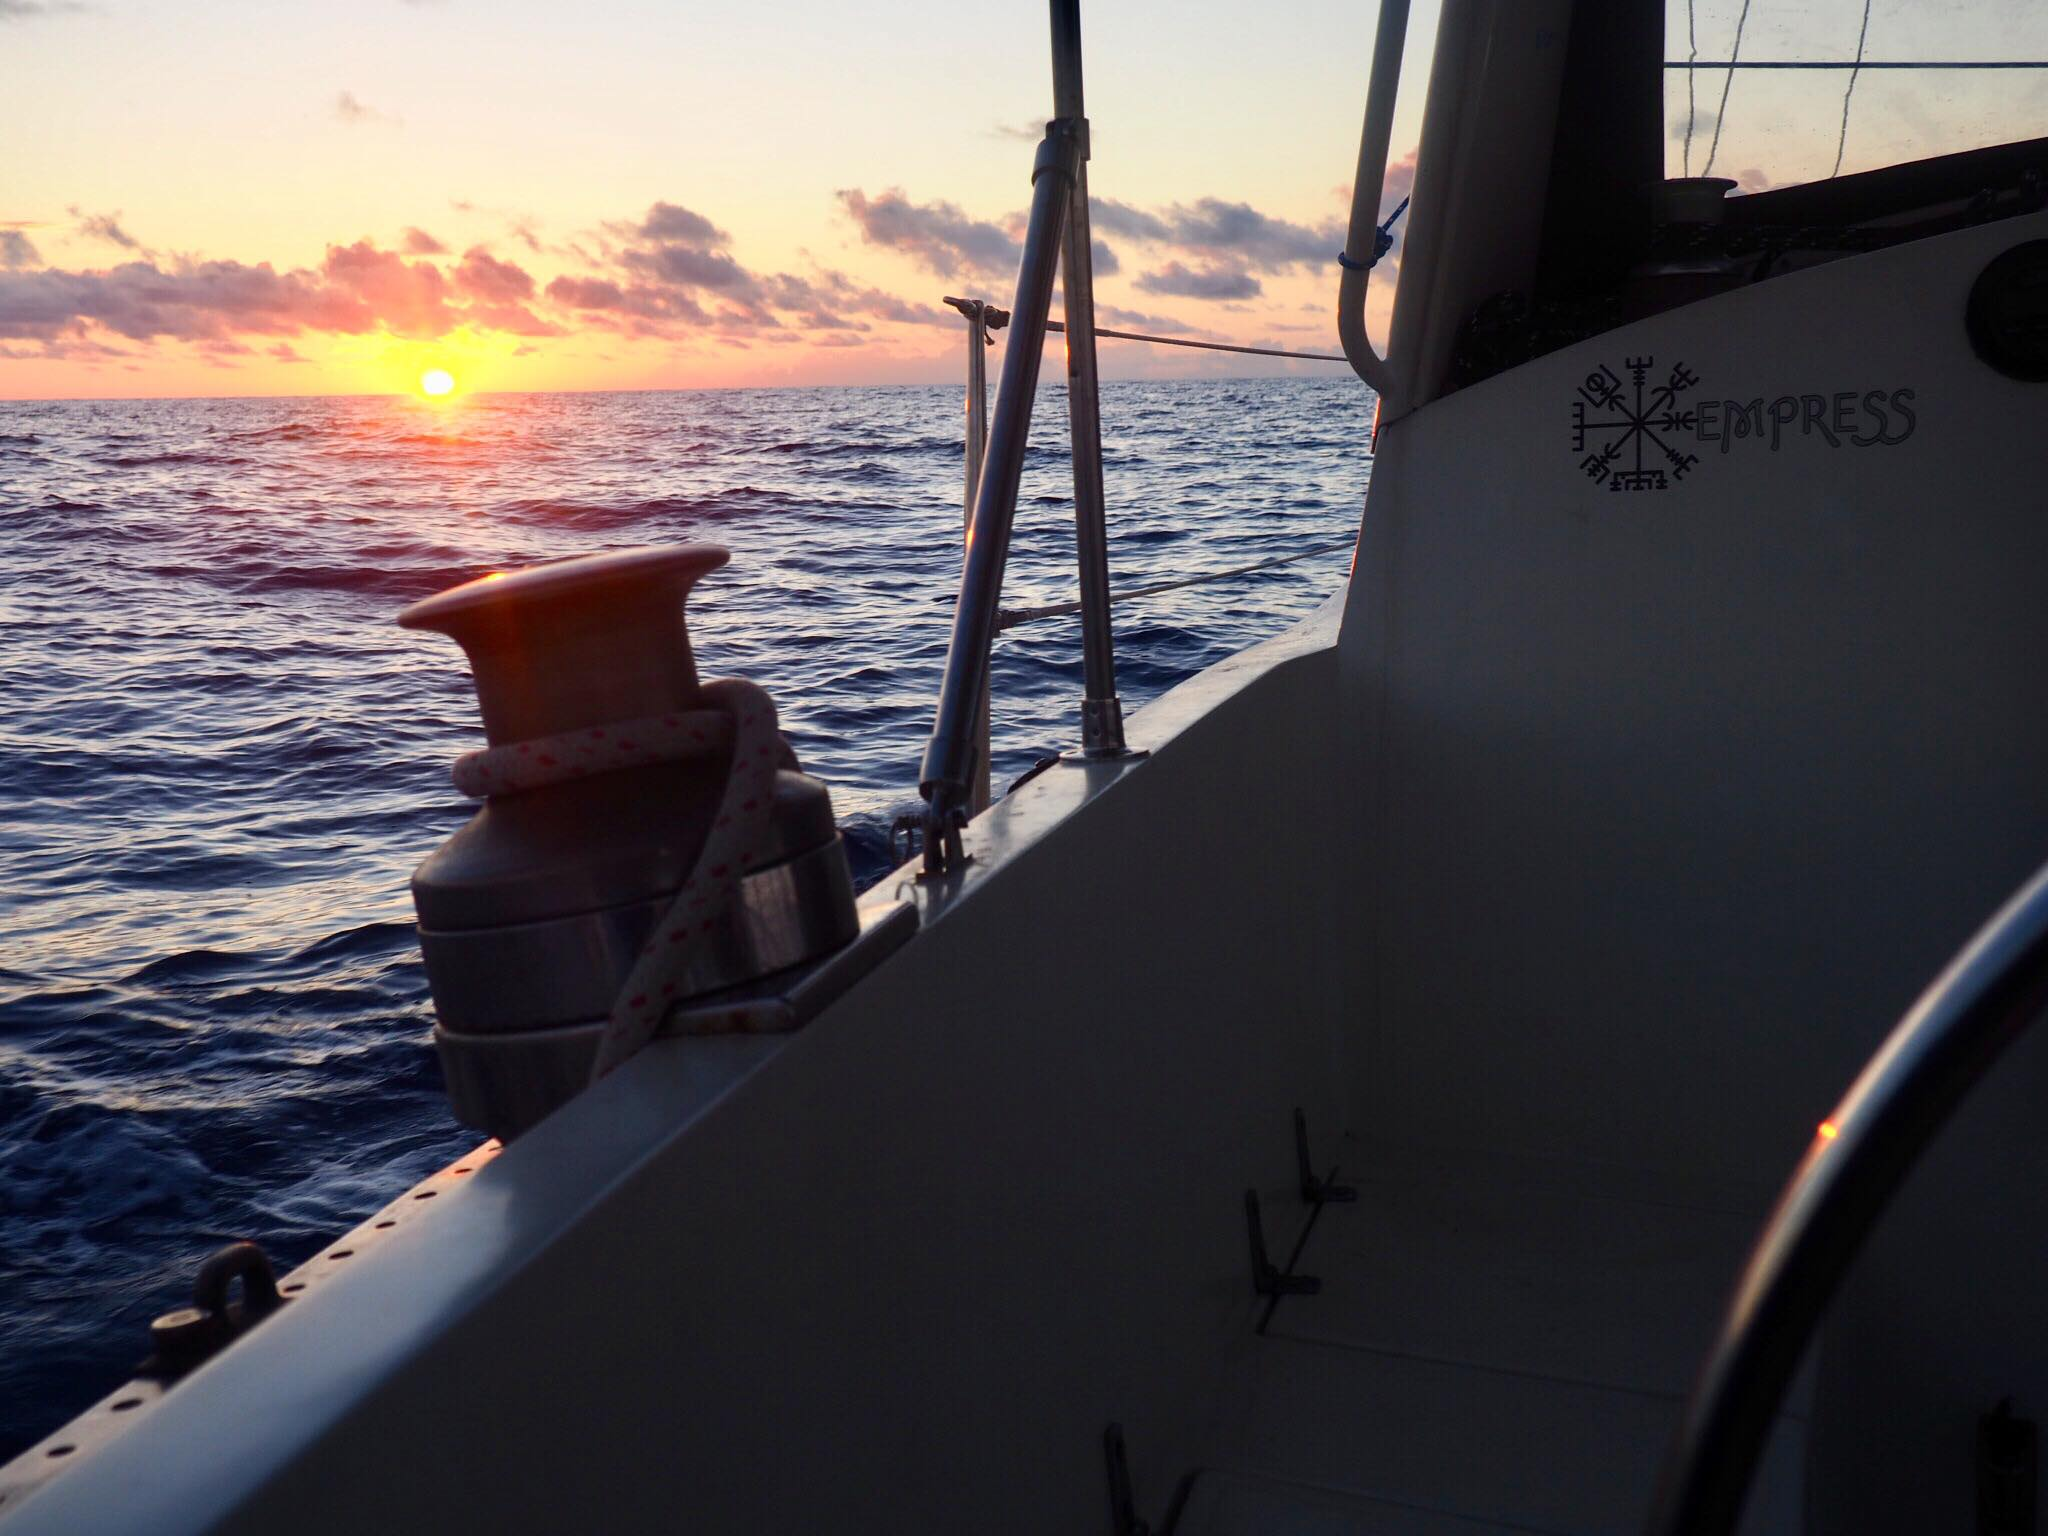 Sailing Life Day 42: Unexpected Plan of Crossing to Dominican Republic after an overnight and non-stop sail to our last Bahamaian Island- Mayaguana.